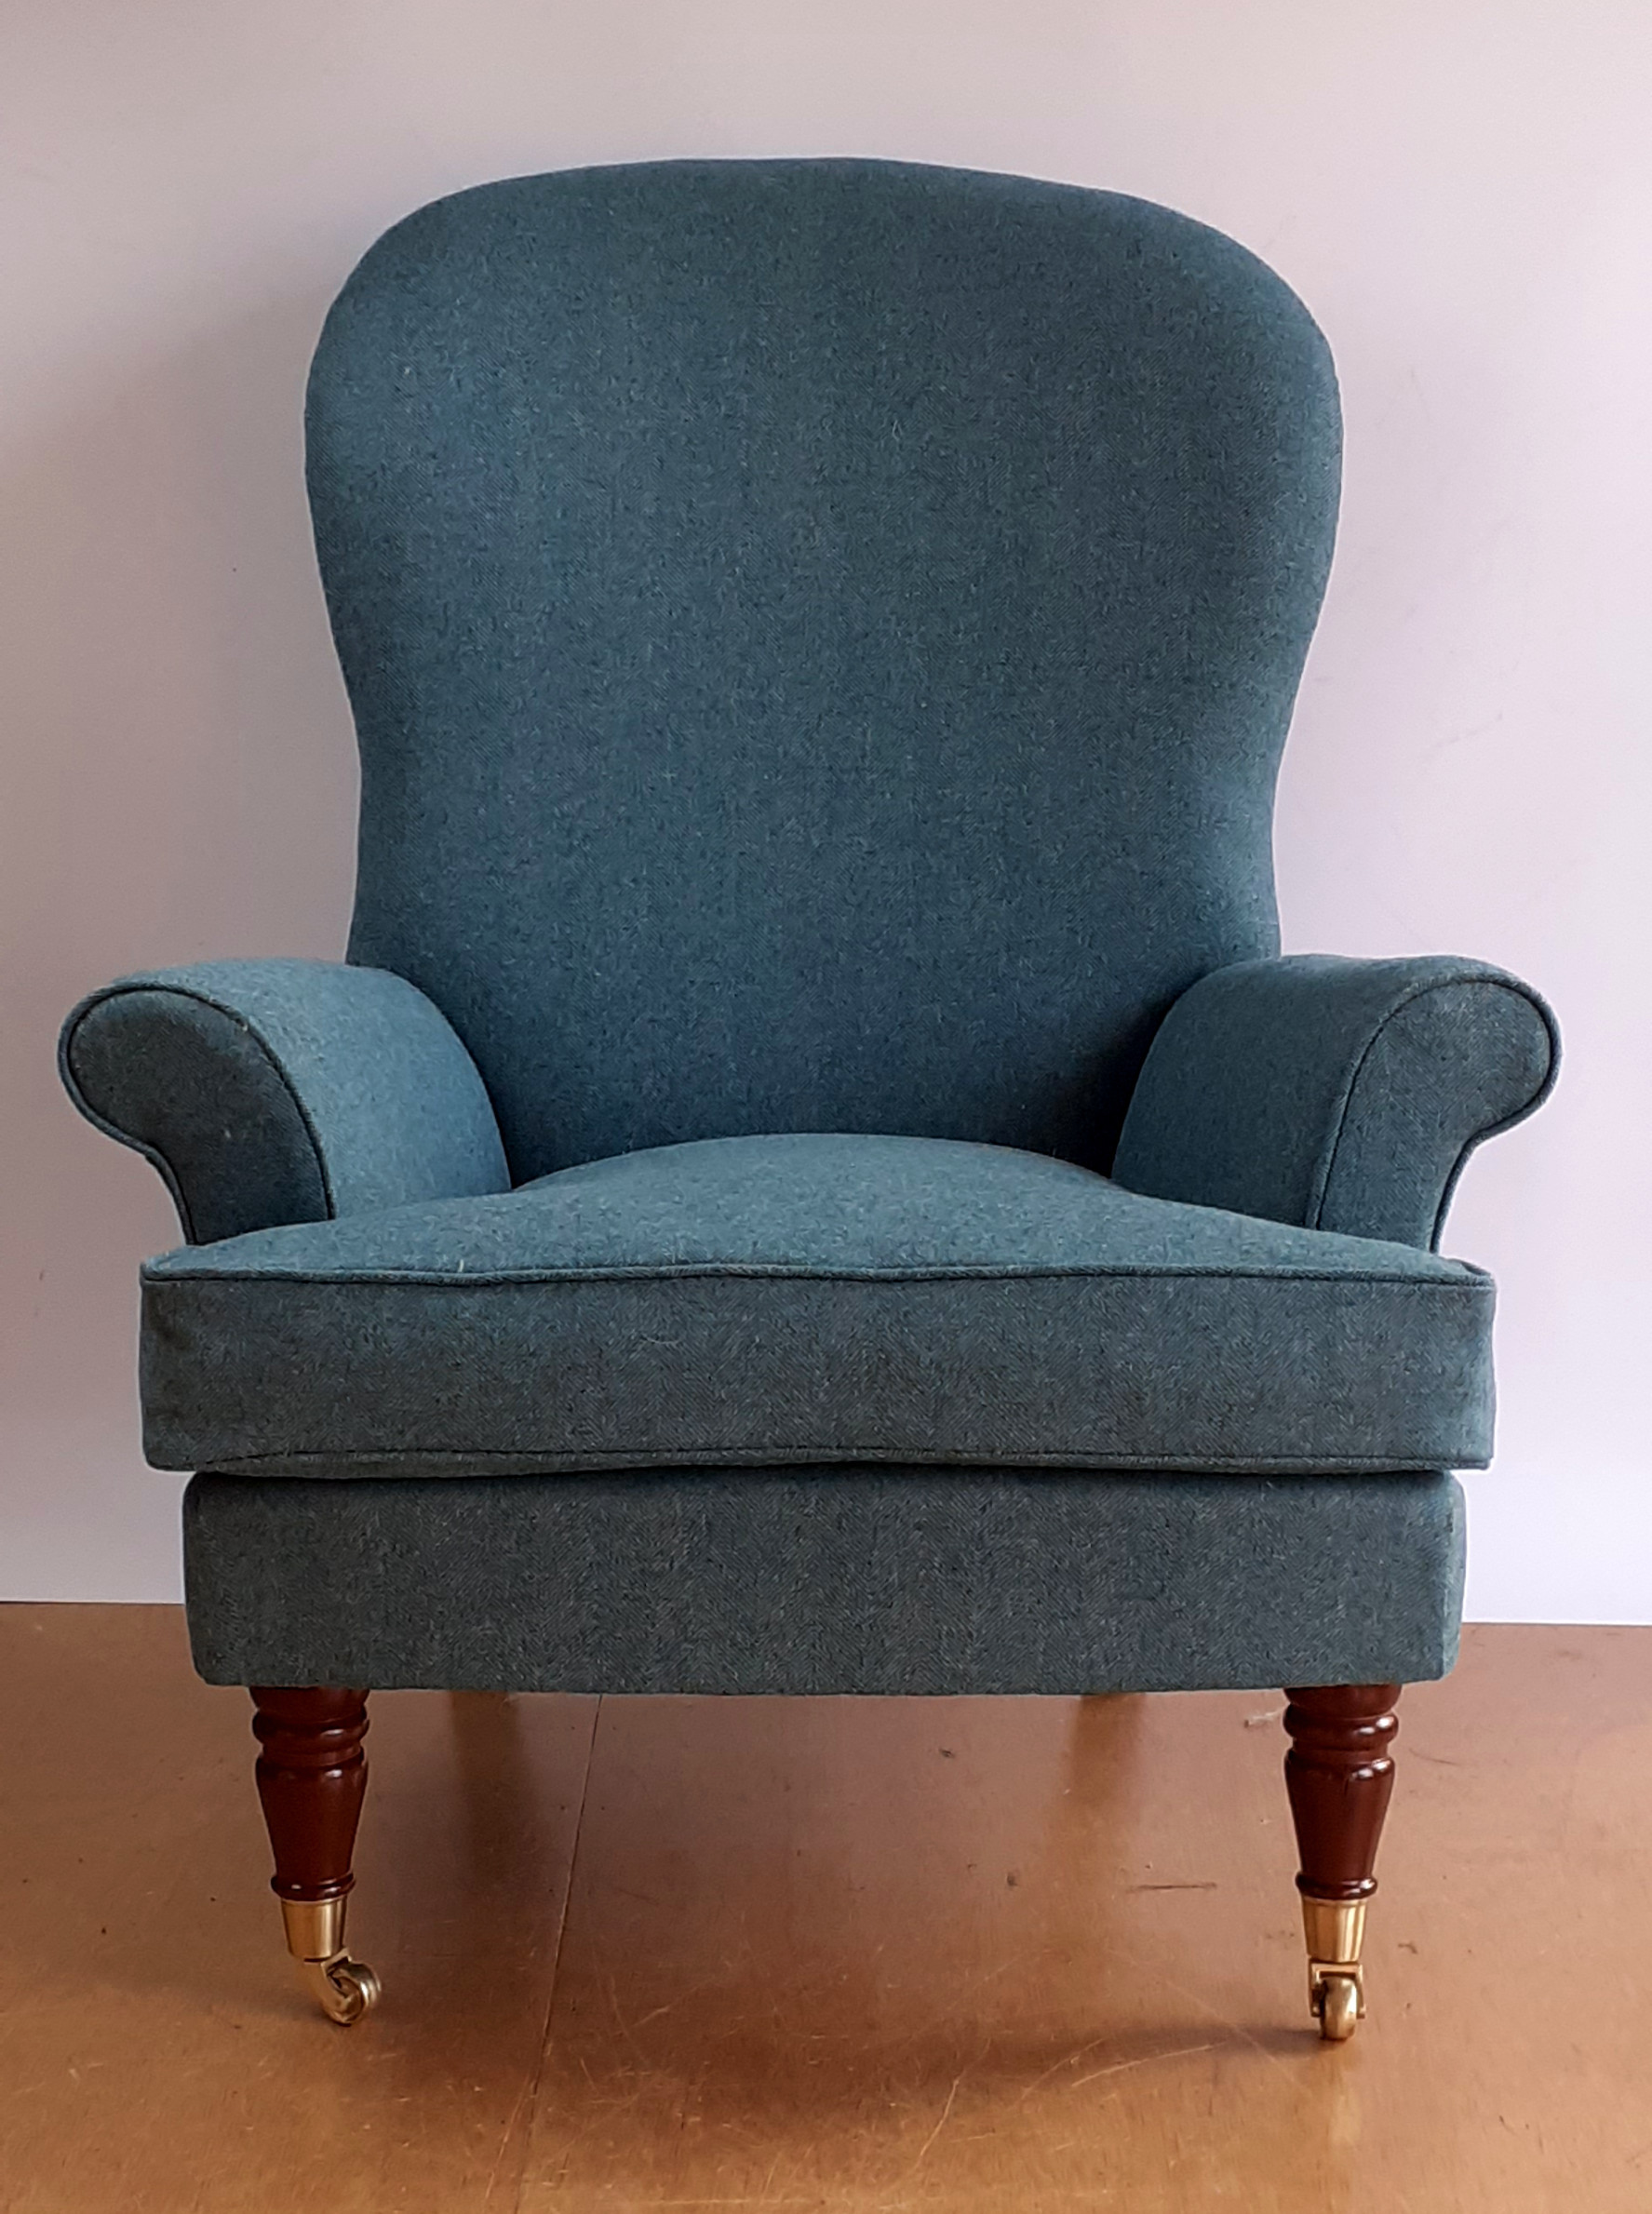 The top fabric is a herringbone weave from Moon - 100% natural wool, a timeless choice for any chair.